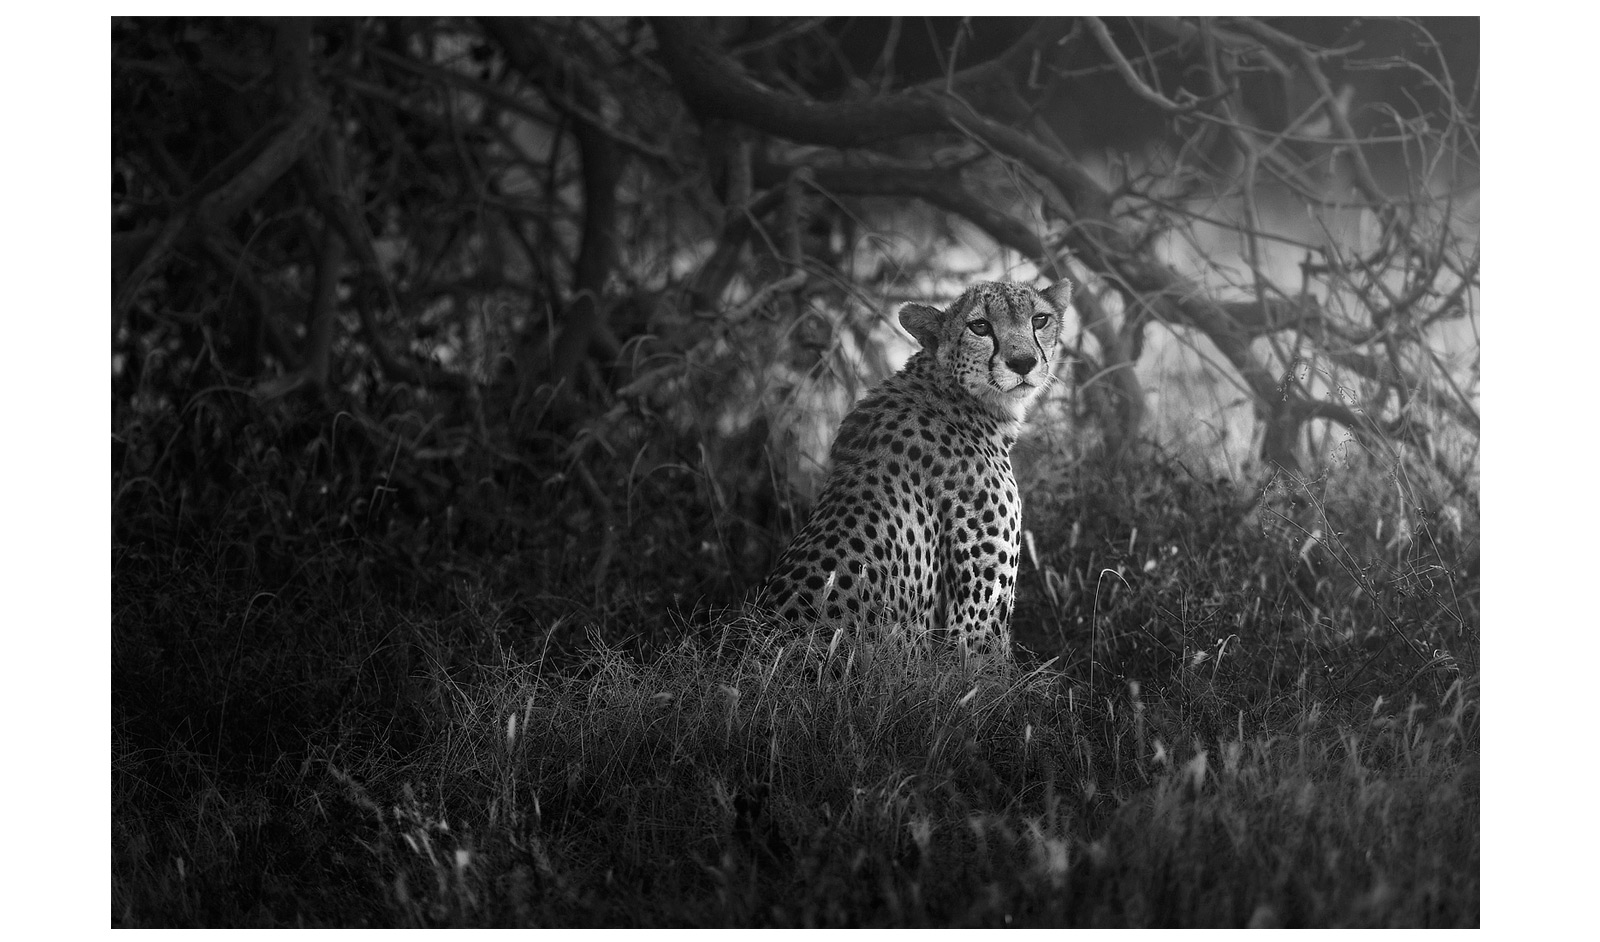 KARIM_SAHAI_cheetah_hiding_under_tree,-Samburu-National-Reserve-Kenya